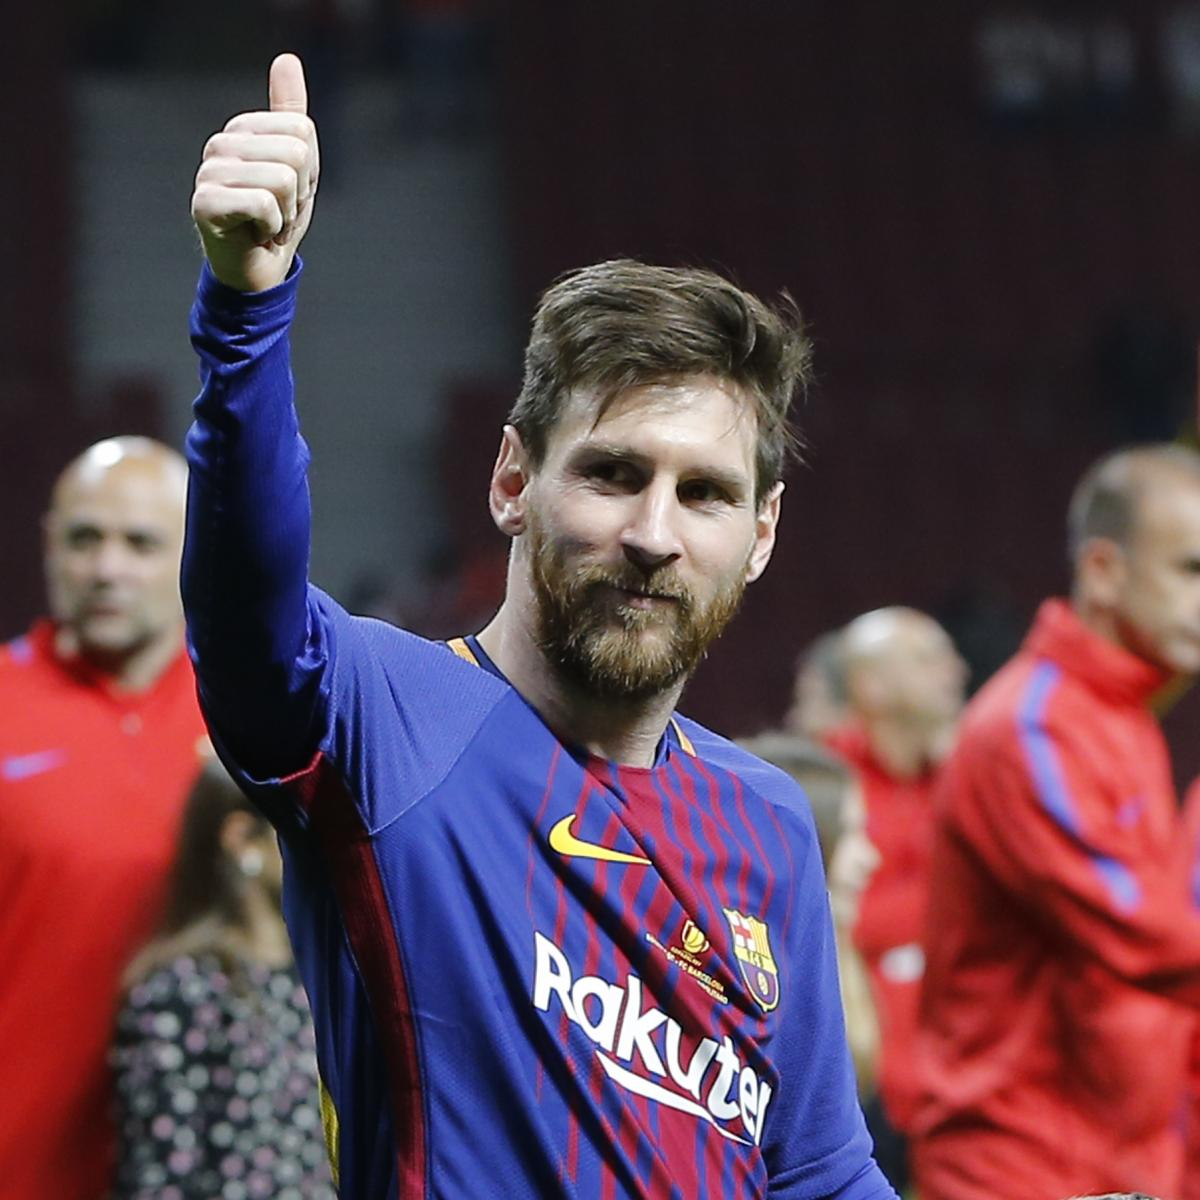 Lionel Messi A Look At The Barcelona Star S Sensational: Lionel Messi Wins Legal Branding Battle With Bicycle